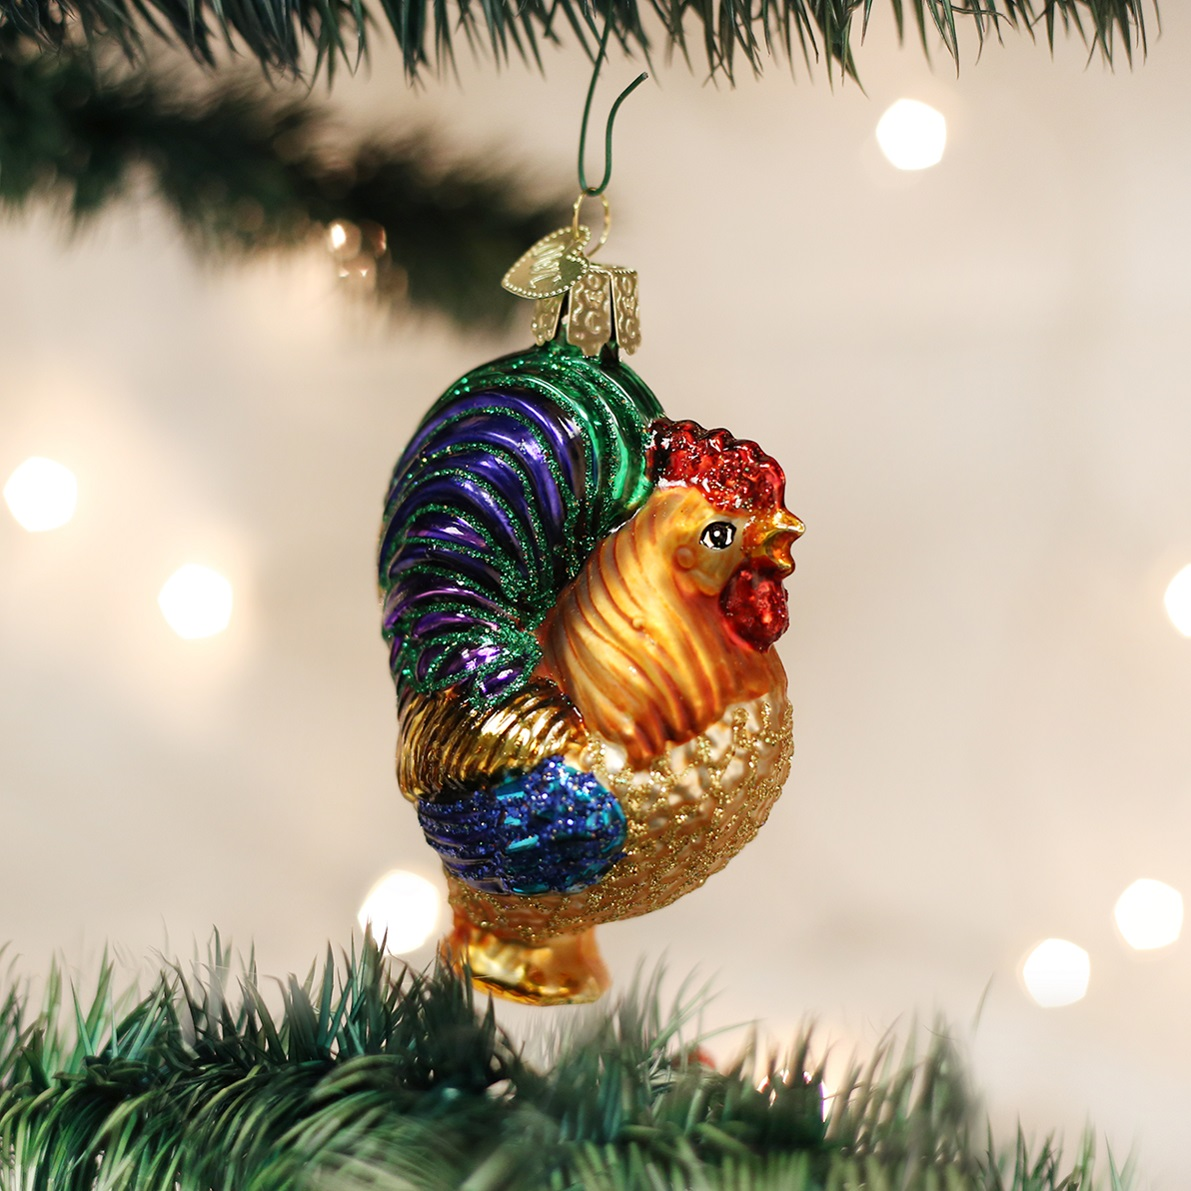 Old World Christmas Rooster Bird Glass Tree Ornament Chicken 16006 FREE BOX New